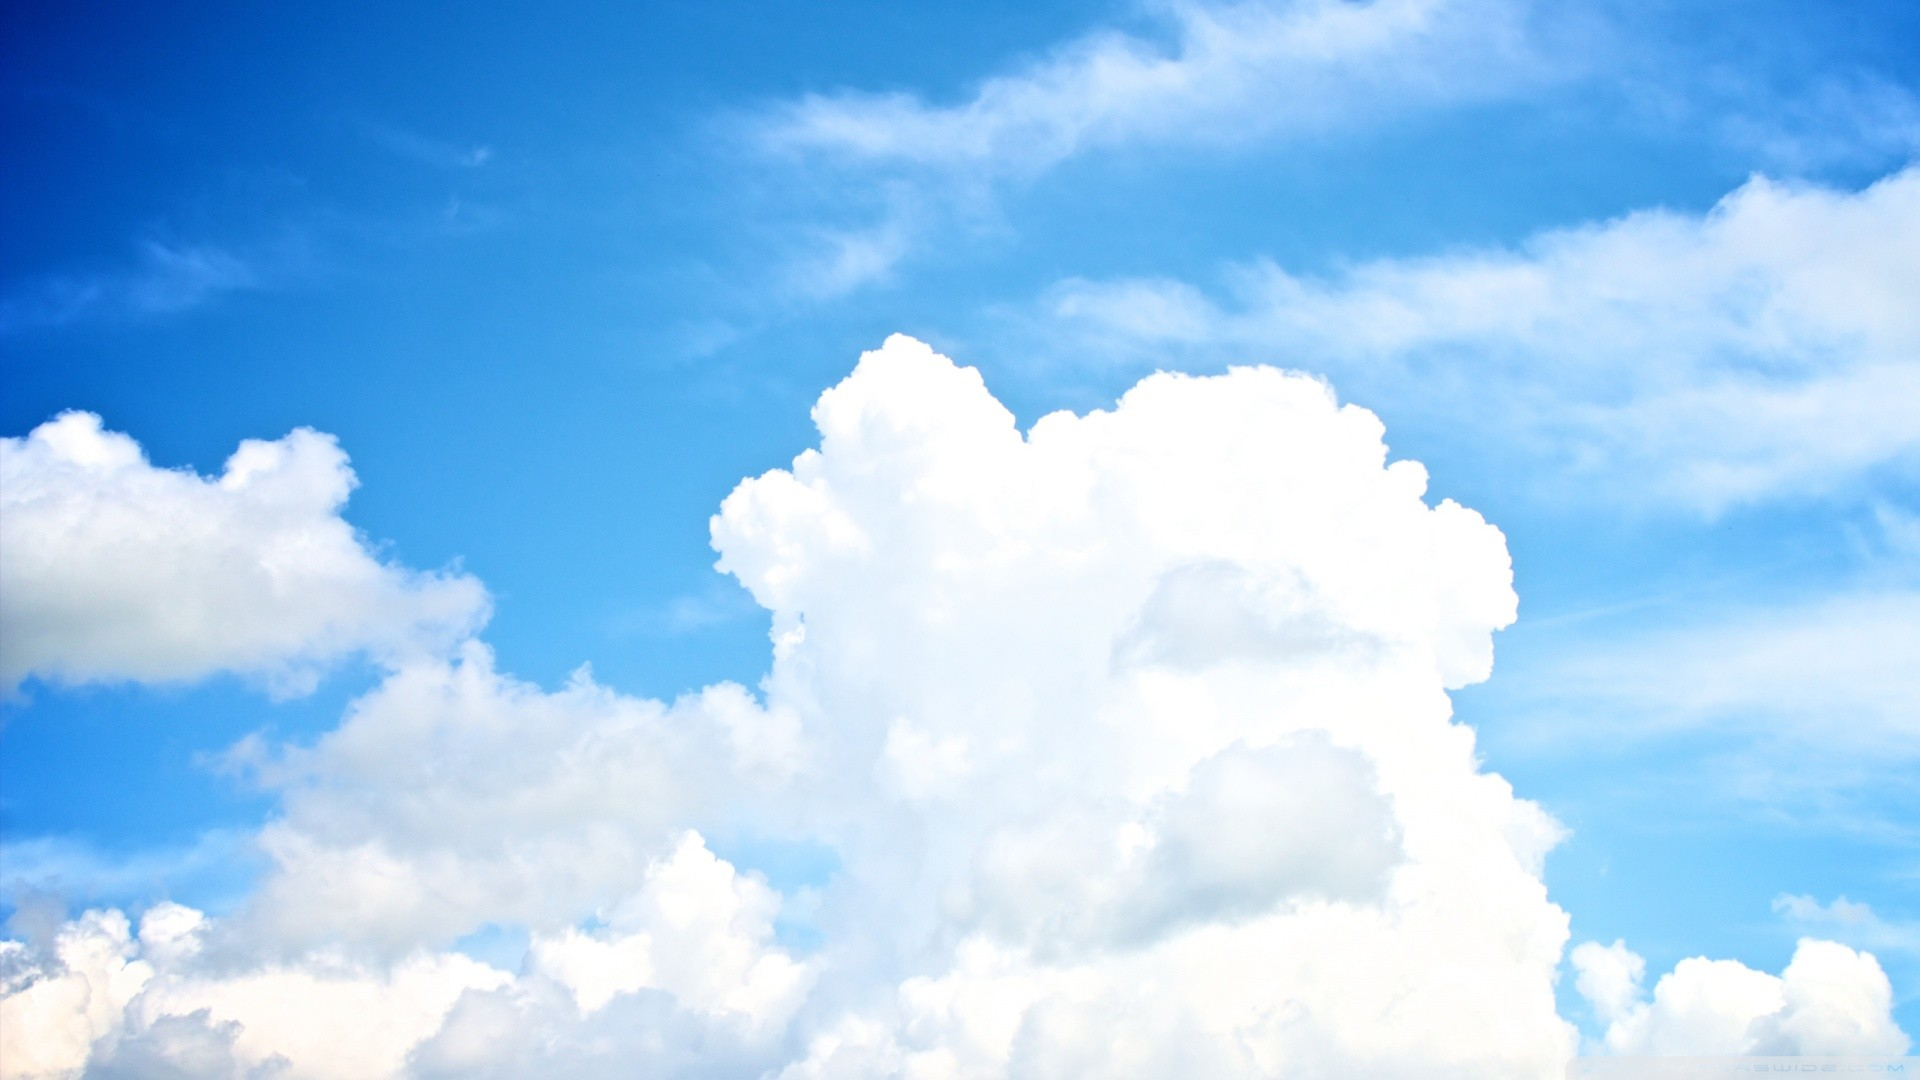 … White Clouds In The Sky HD desktop wallpaper High Definition .